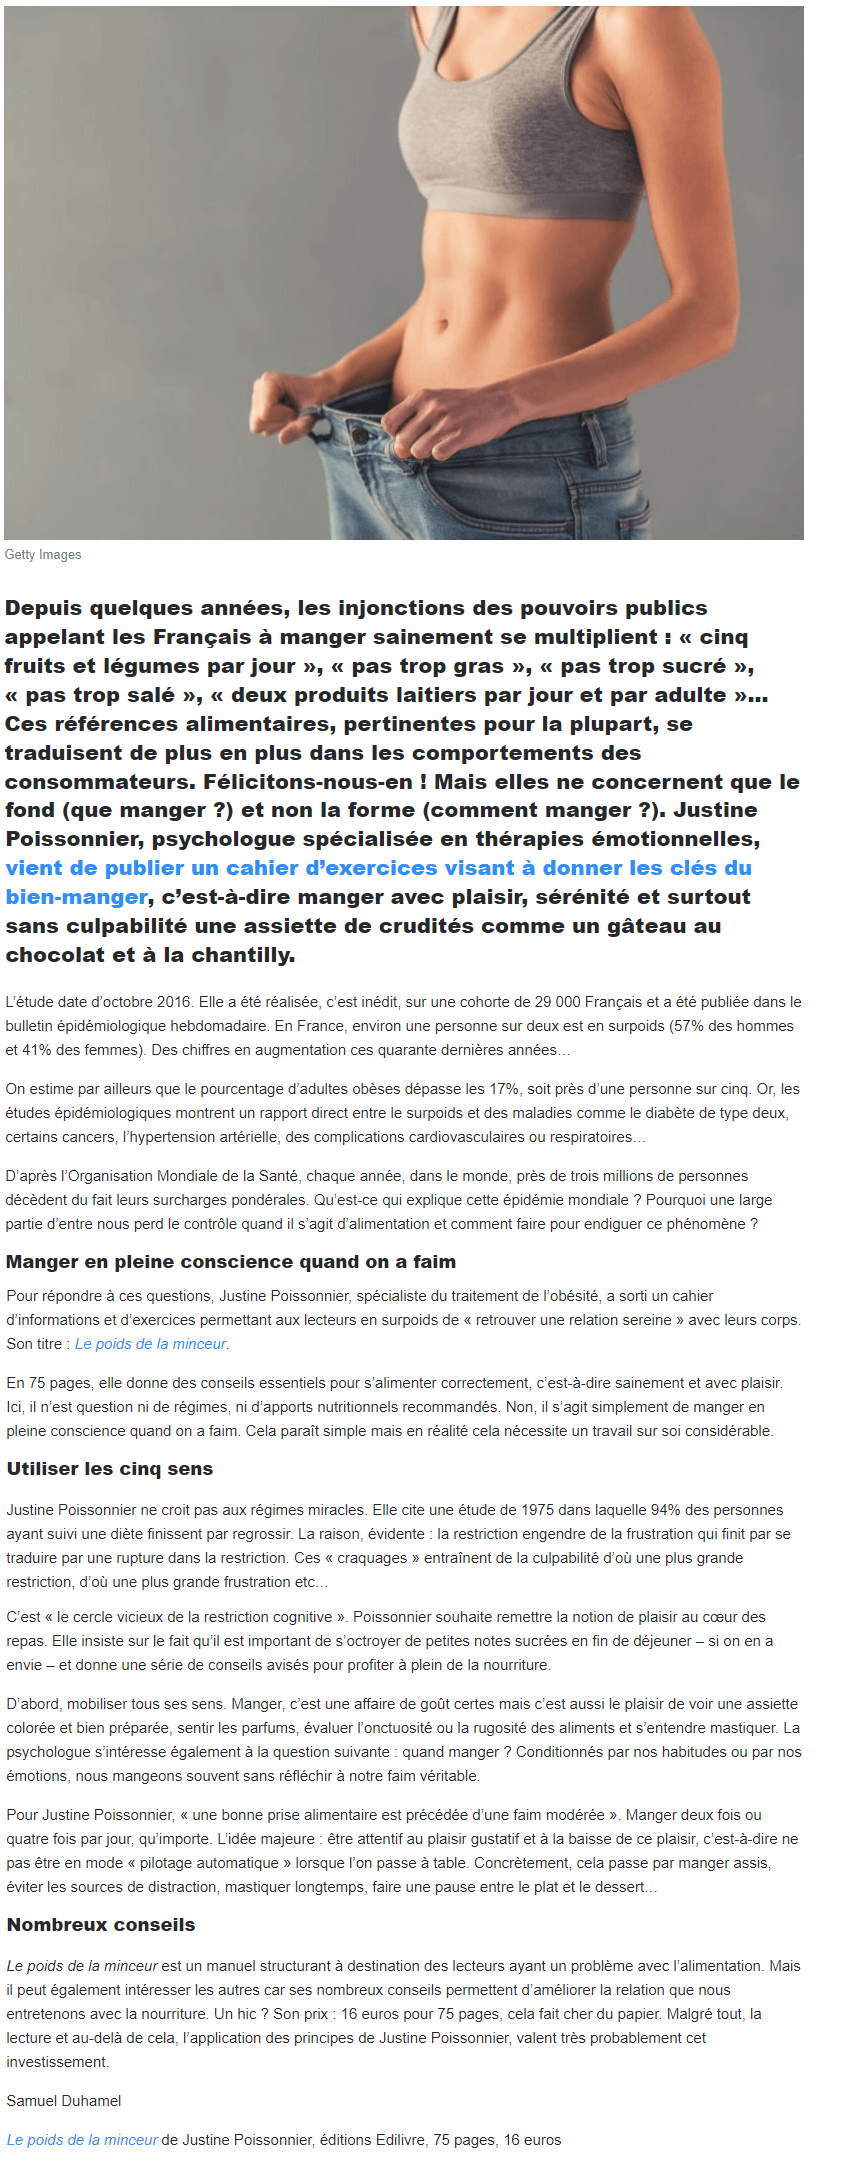 article_M6info_Justine_Poissonnier_2018_Edilivre